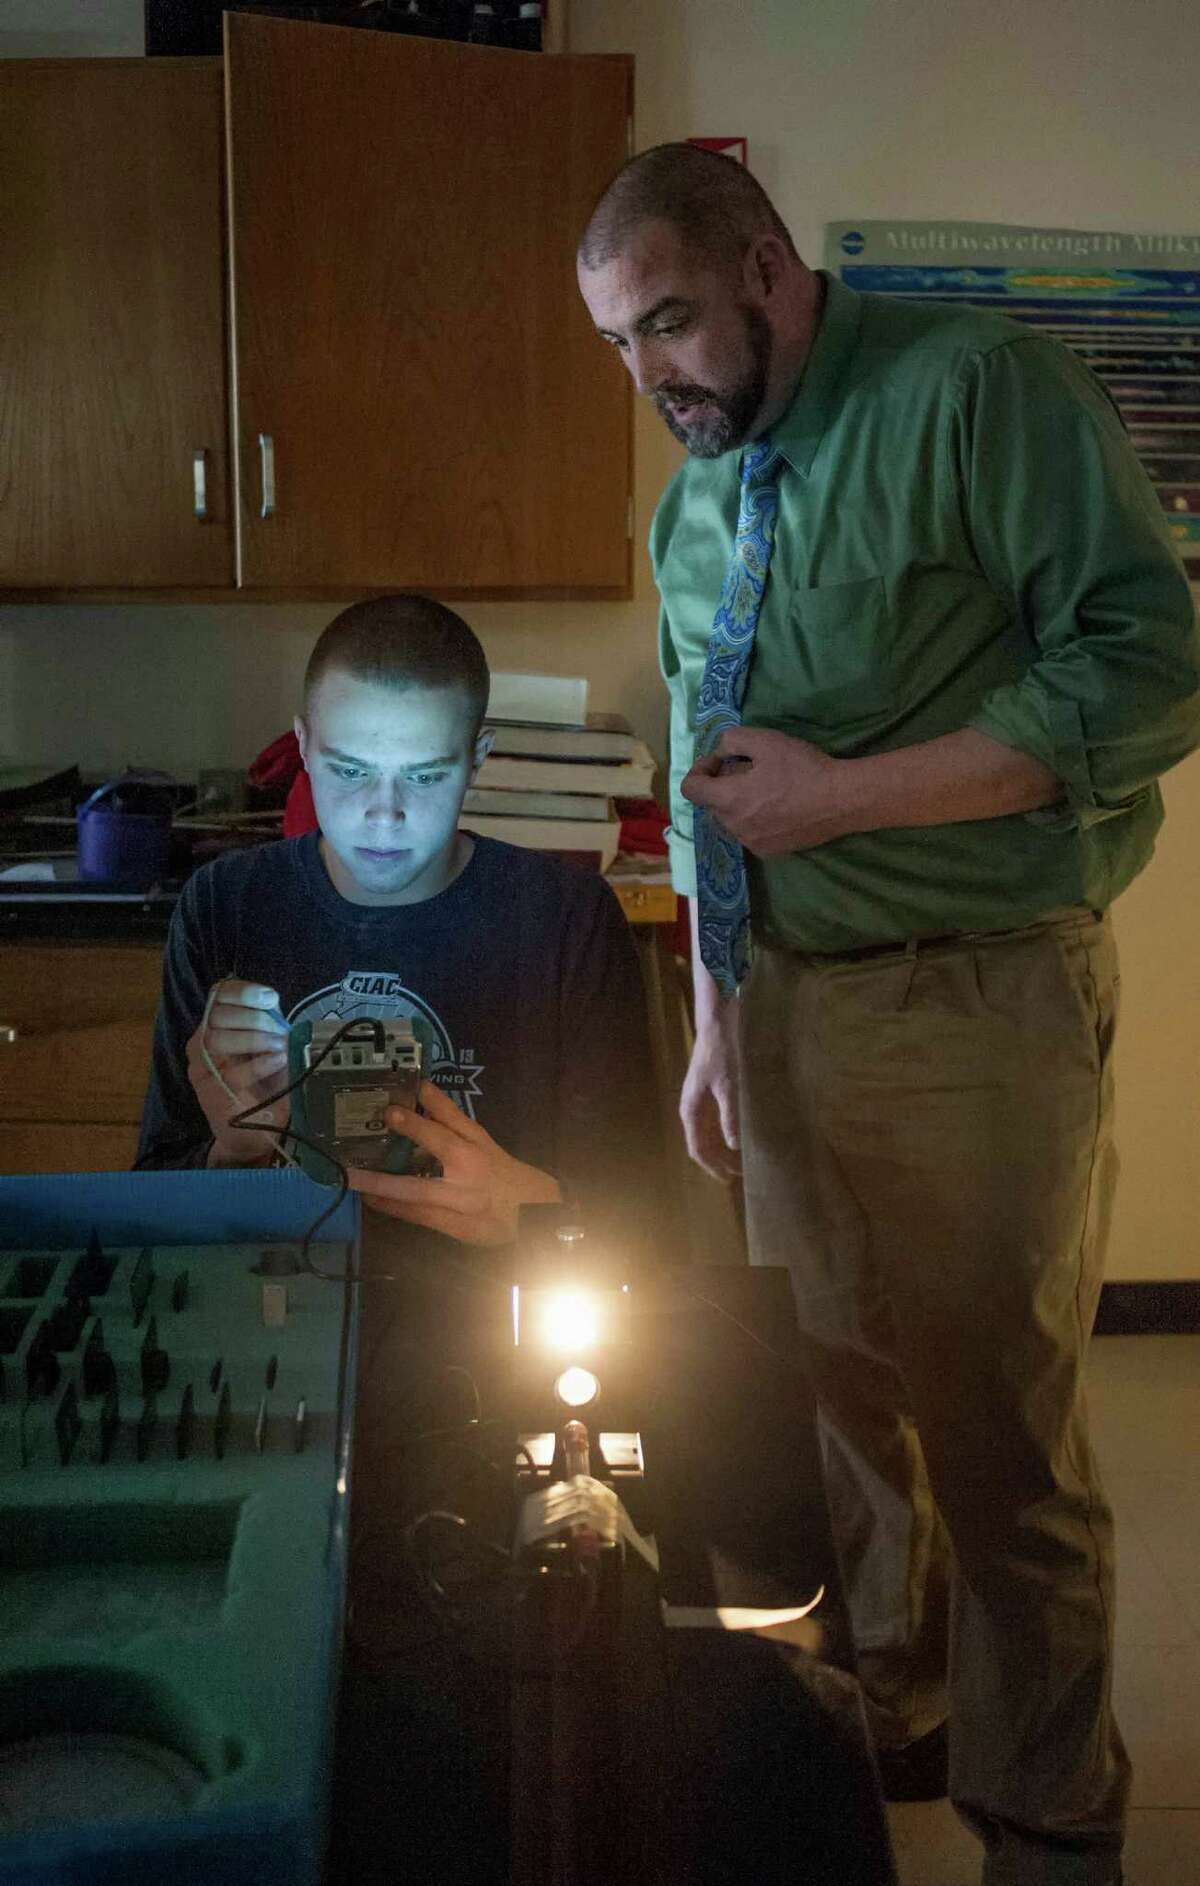 Greenwich high school physics teacher, Dana Schlosser, helps out student Ben Wurst while he works on a project that measures the intensity of light based on the angle of polarization lenses. The class is part of a program called flipped learning an increasingly popular style of learning in which students essentially do homework/assignments in class and then watch or listen to lectures or other forms of teacher instruction at home. Wednesday, March, 26th, 2014.